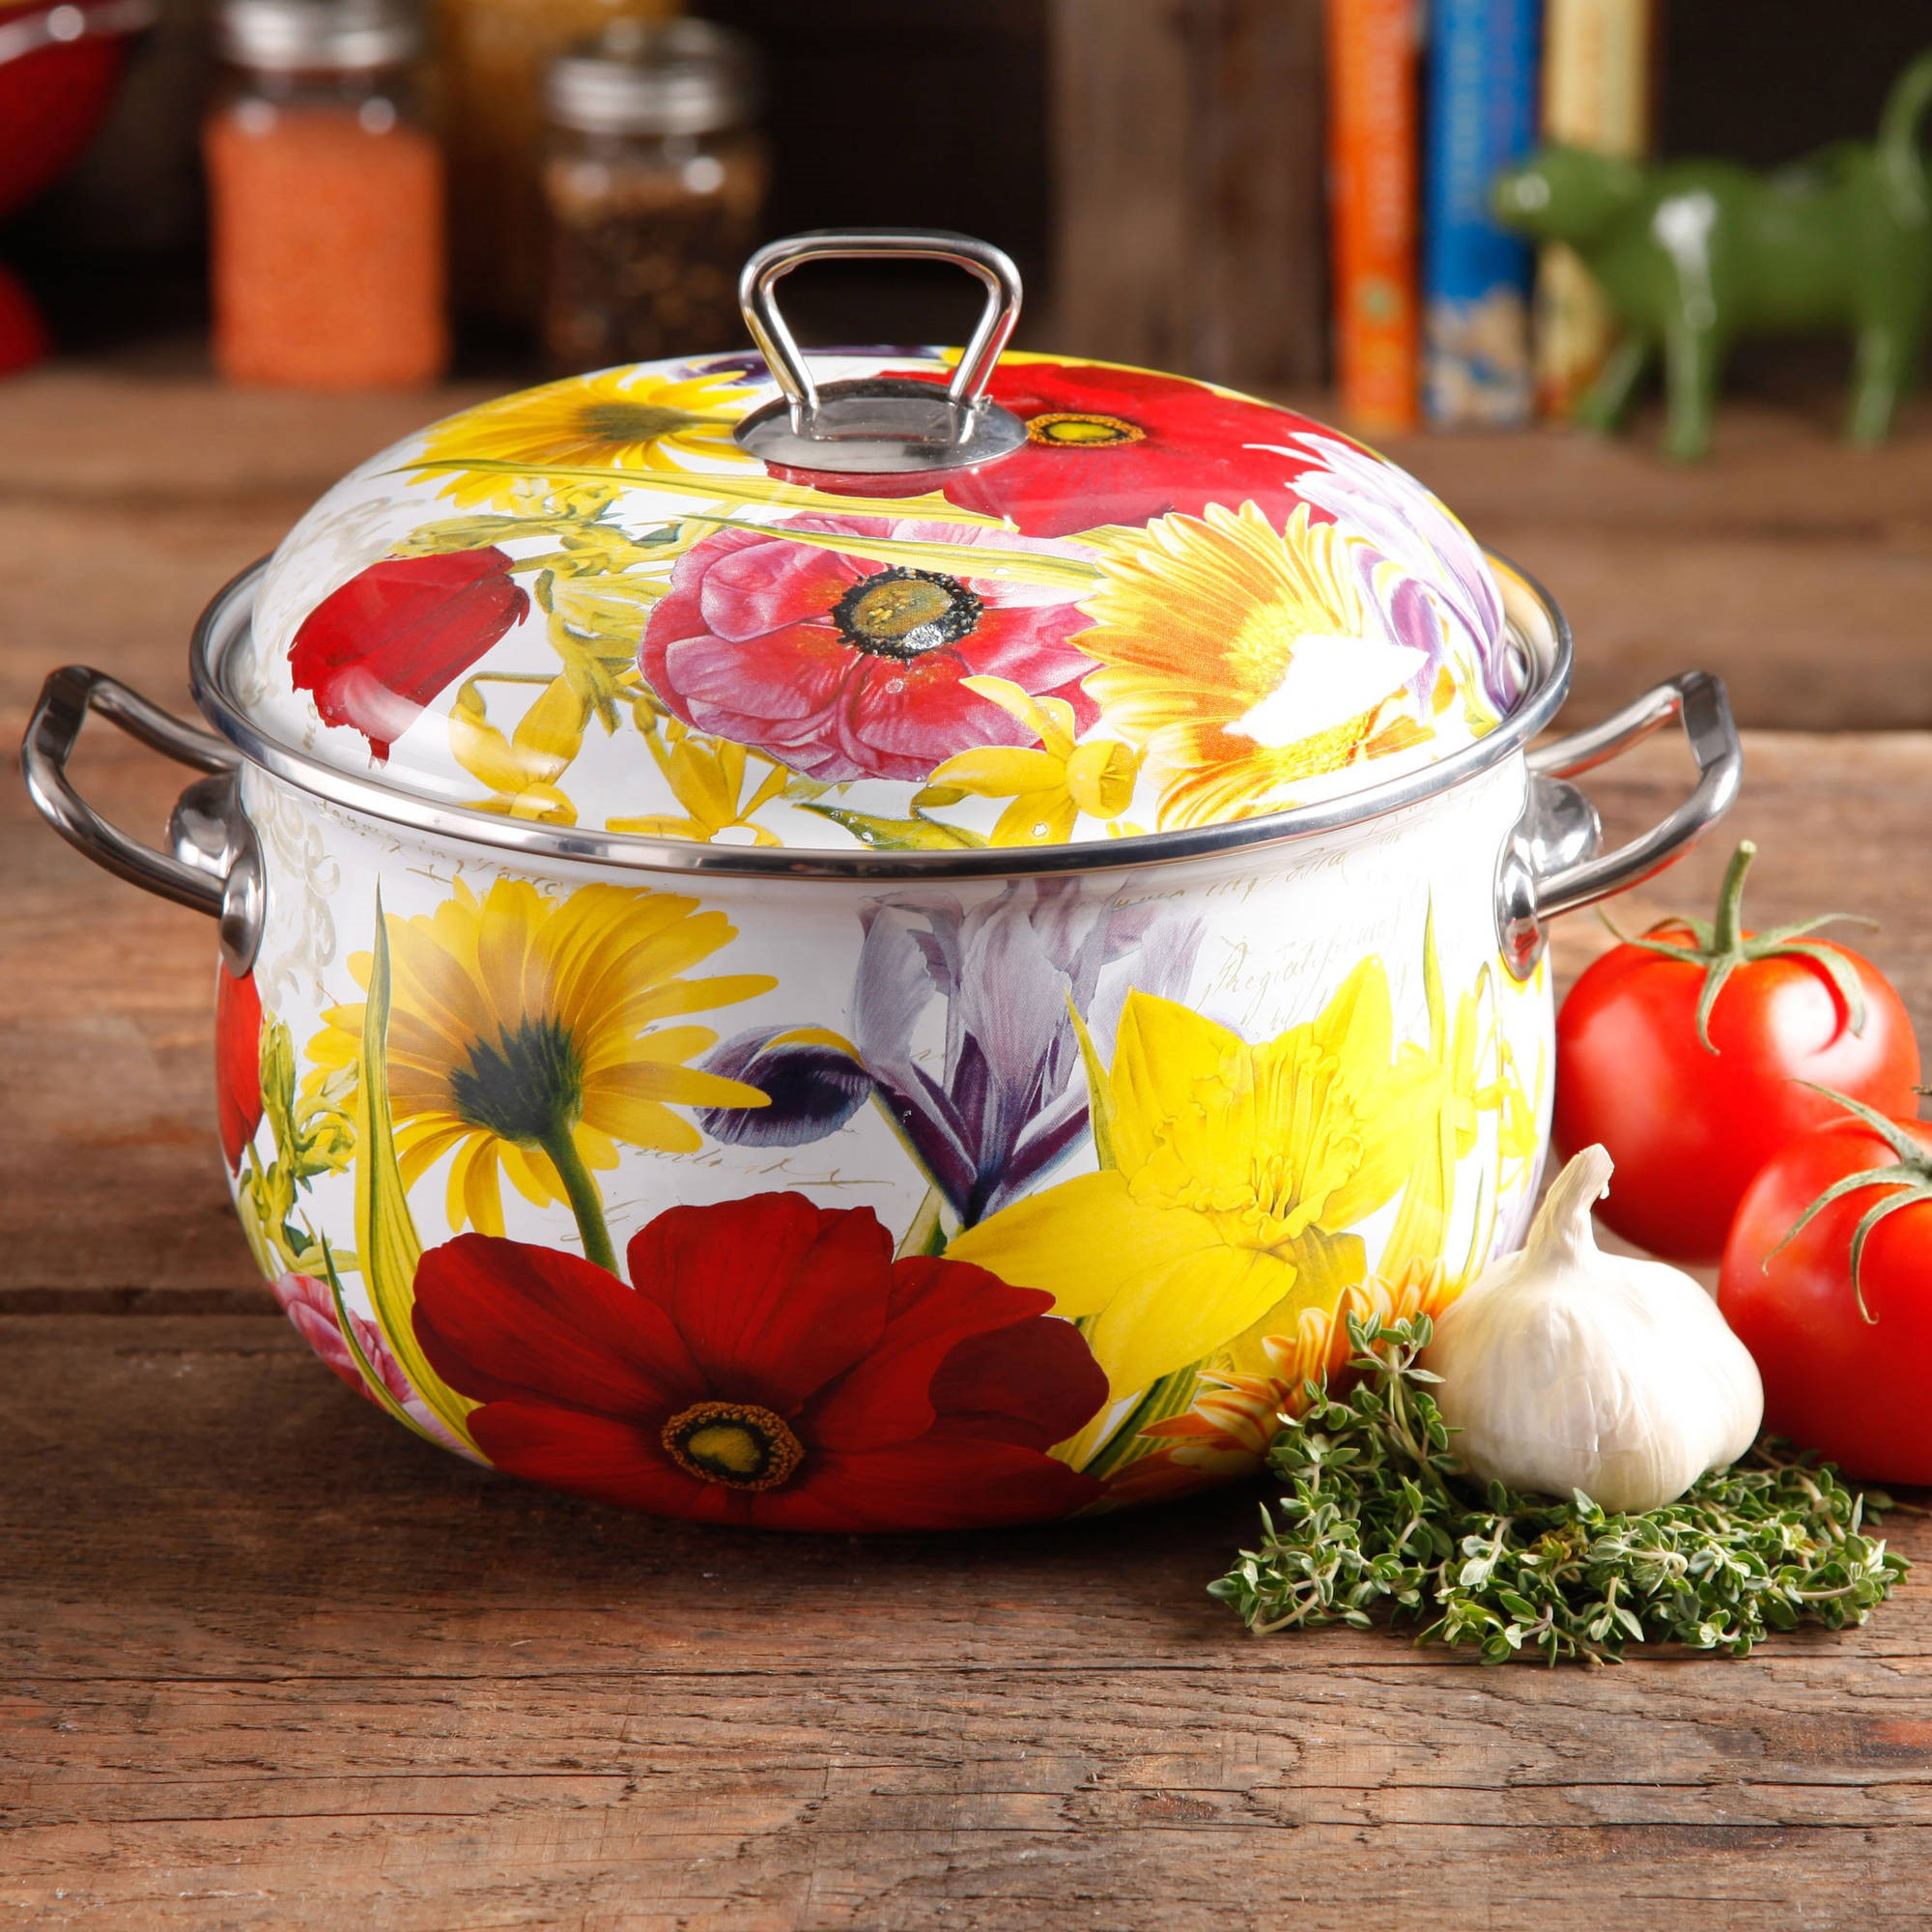 The Pioneer Woman Floral Garden 6.5-Quart Dutch Oven